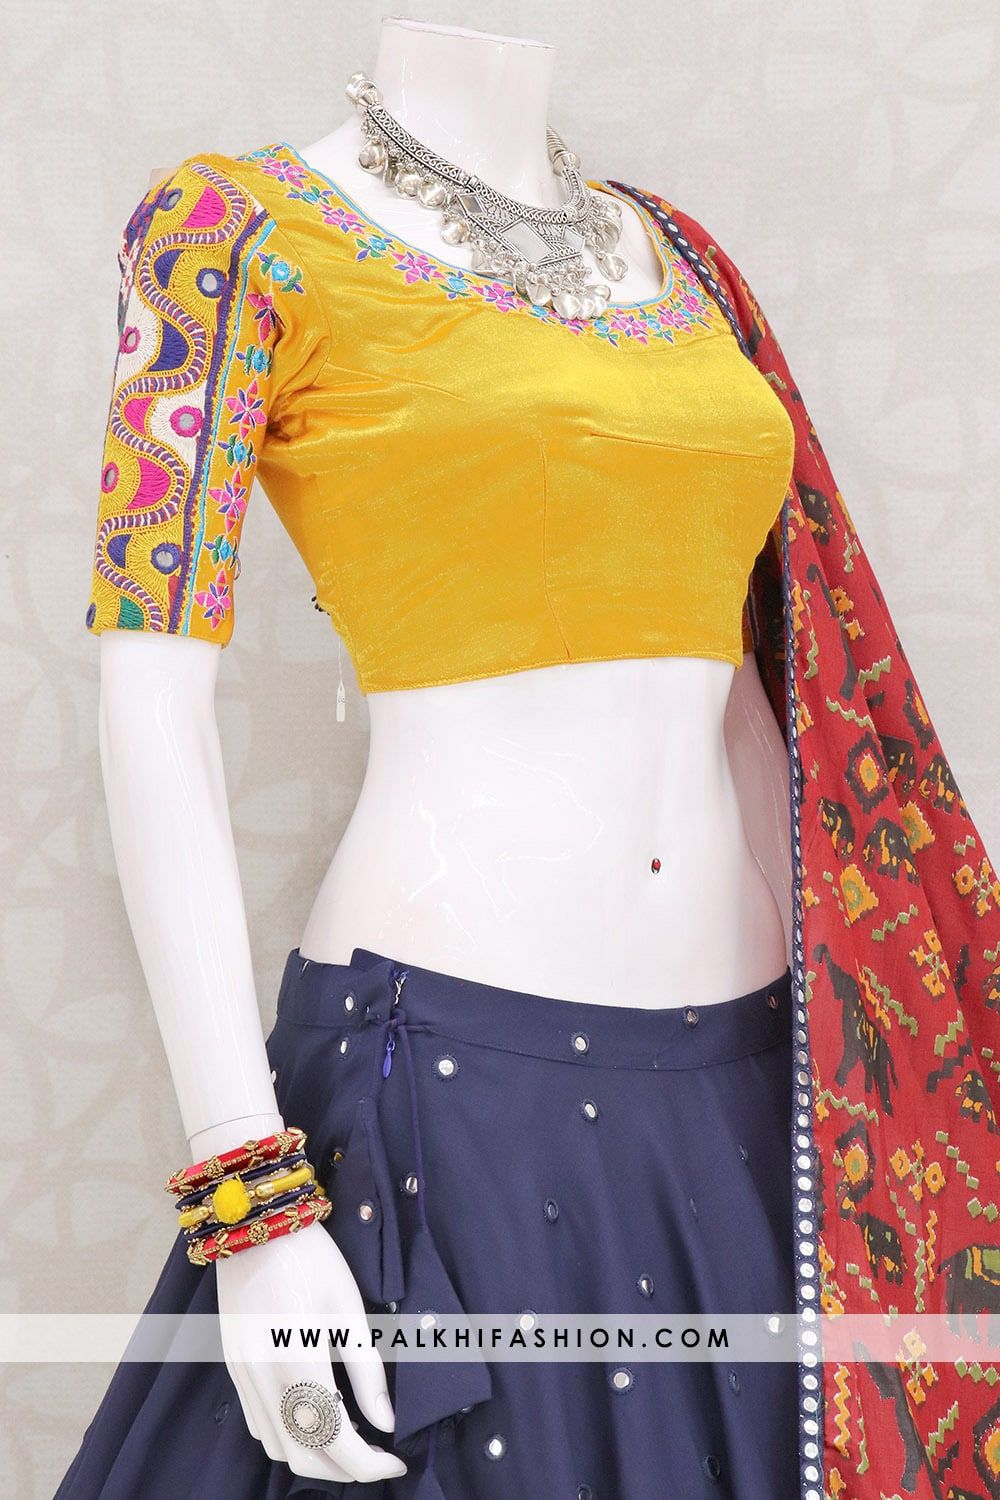 13 Meter Flair Designer Navratri Chaniya Choli From Palkhi Fashion #chaniyacholi